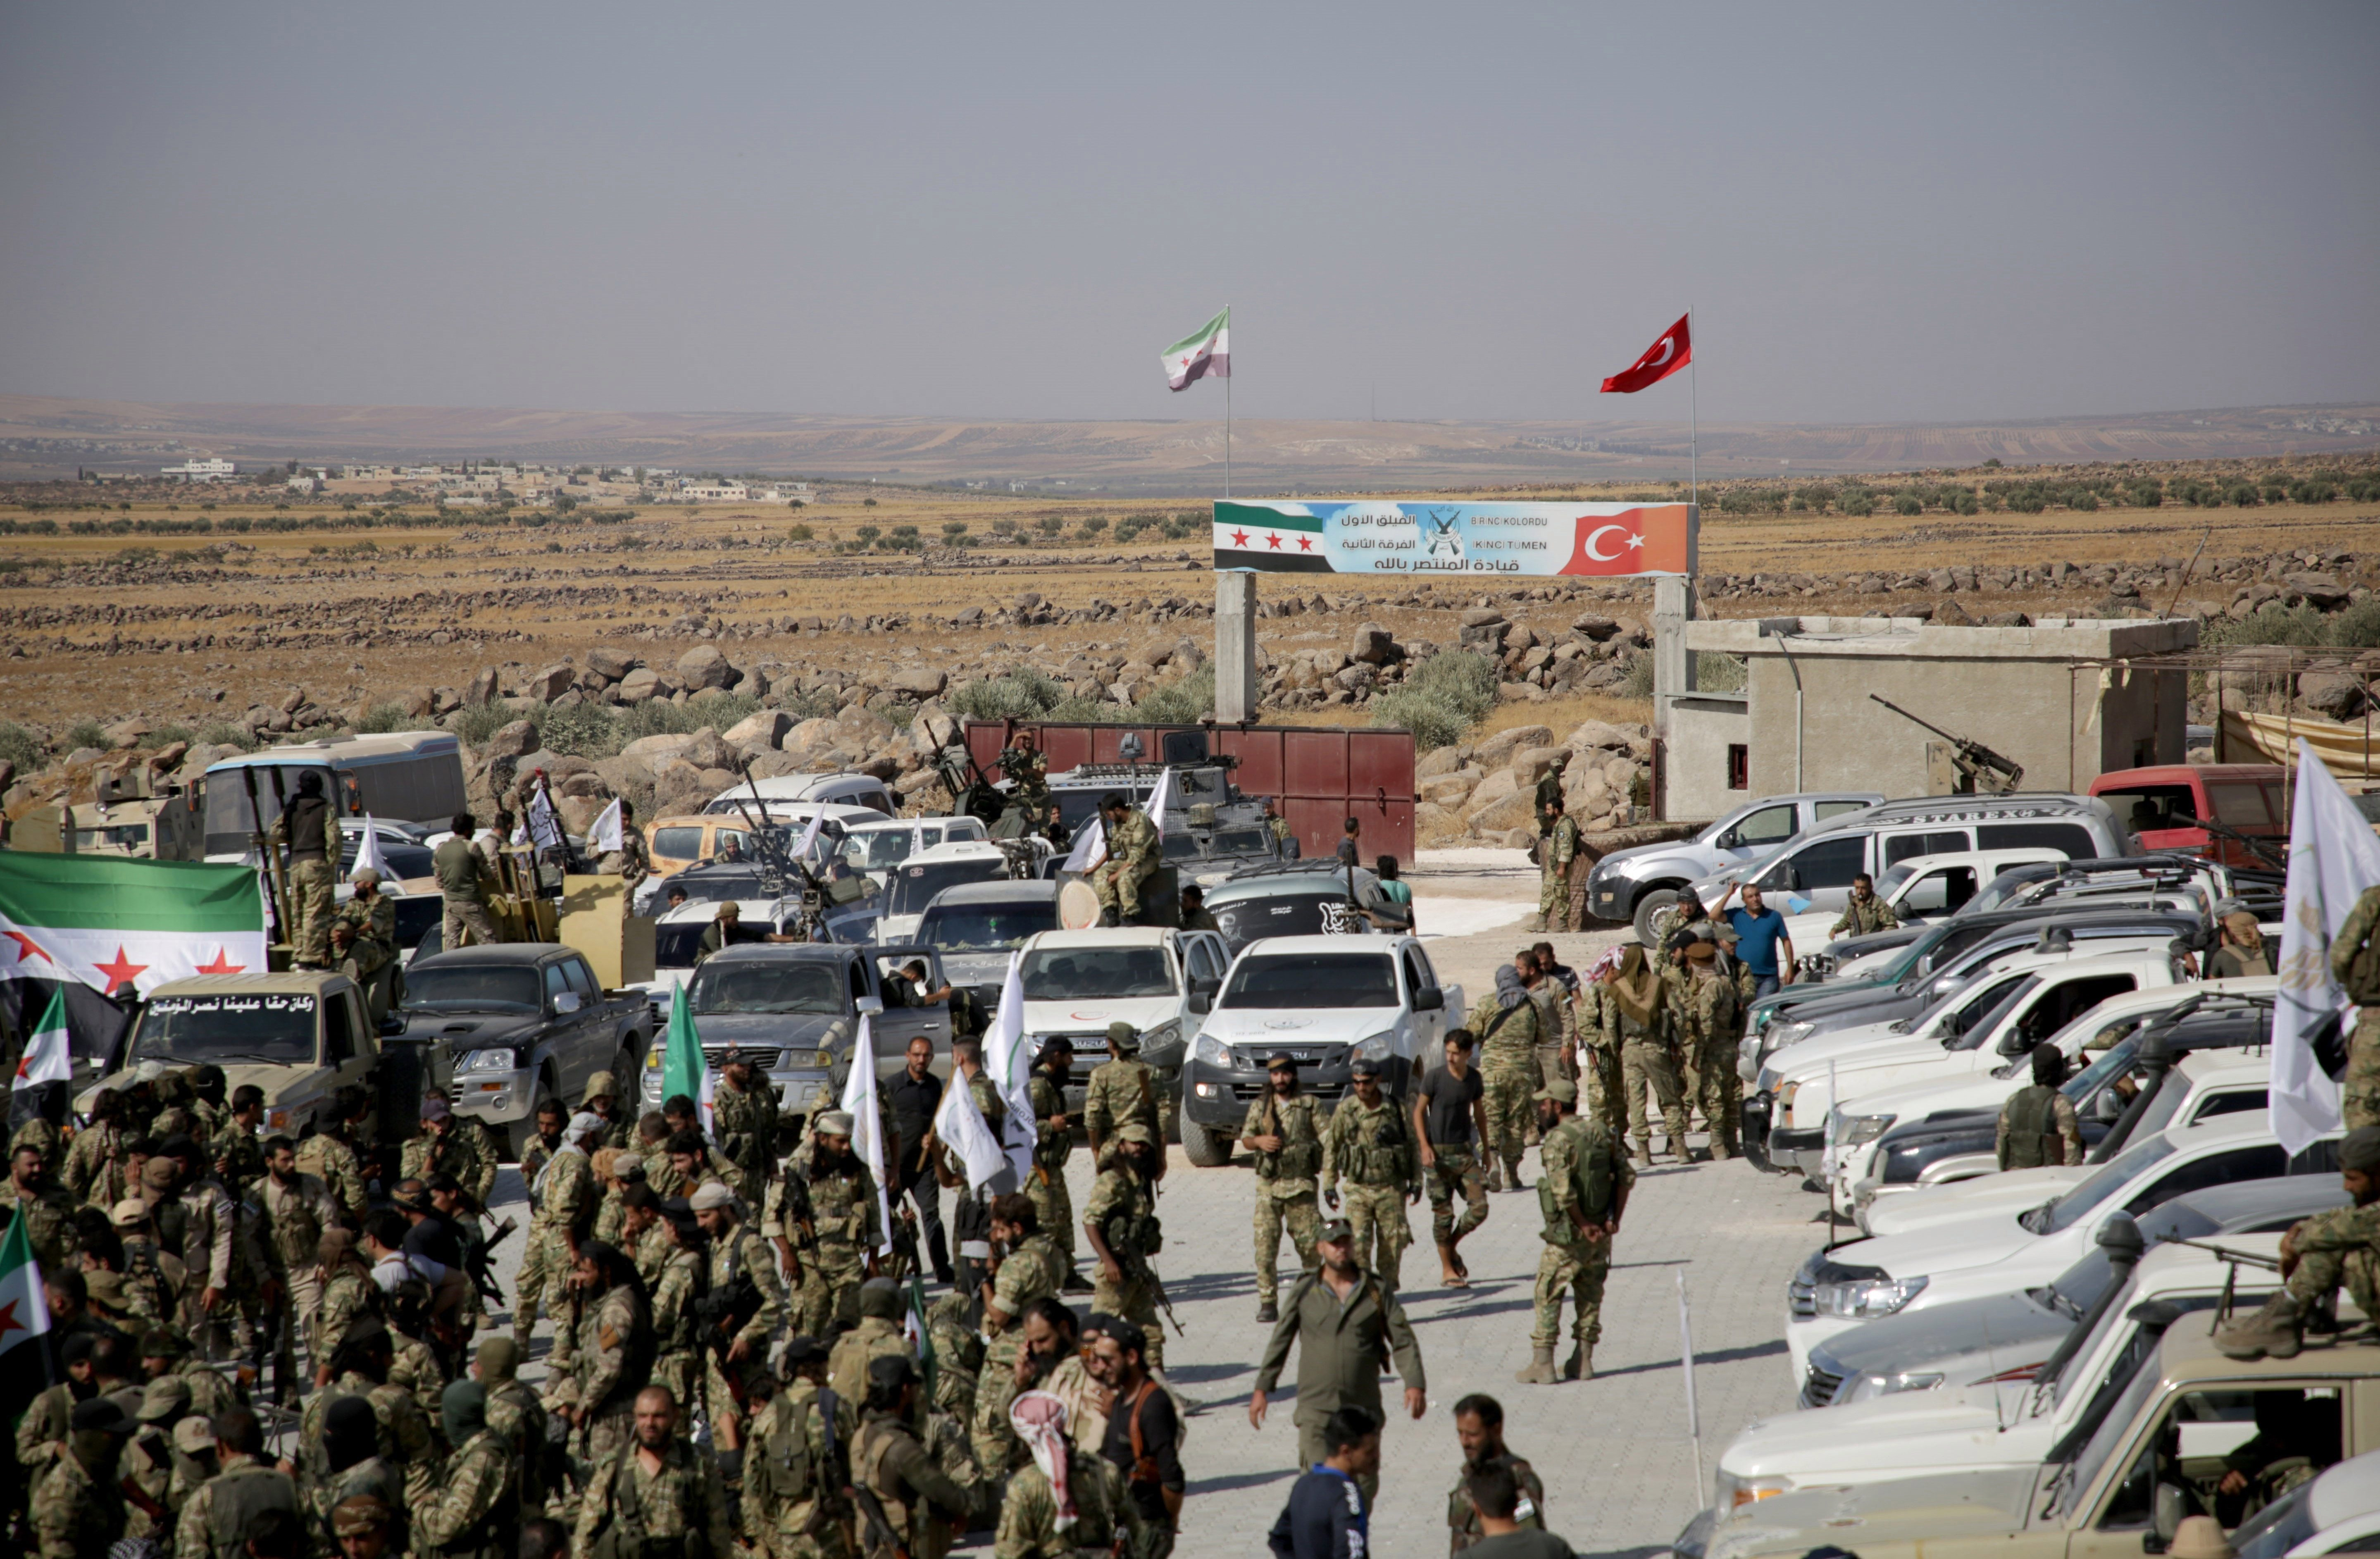 The Syrian National Army is a component of Syrian opposition forces to Assad, backing Turkey